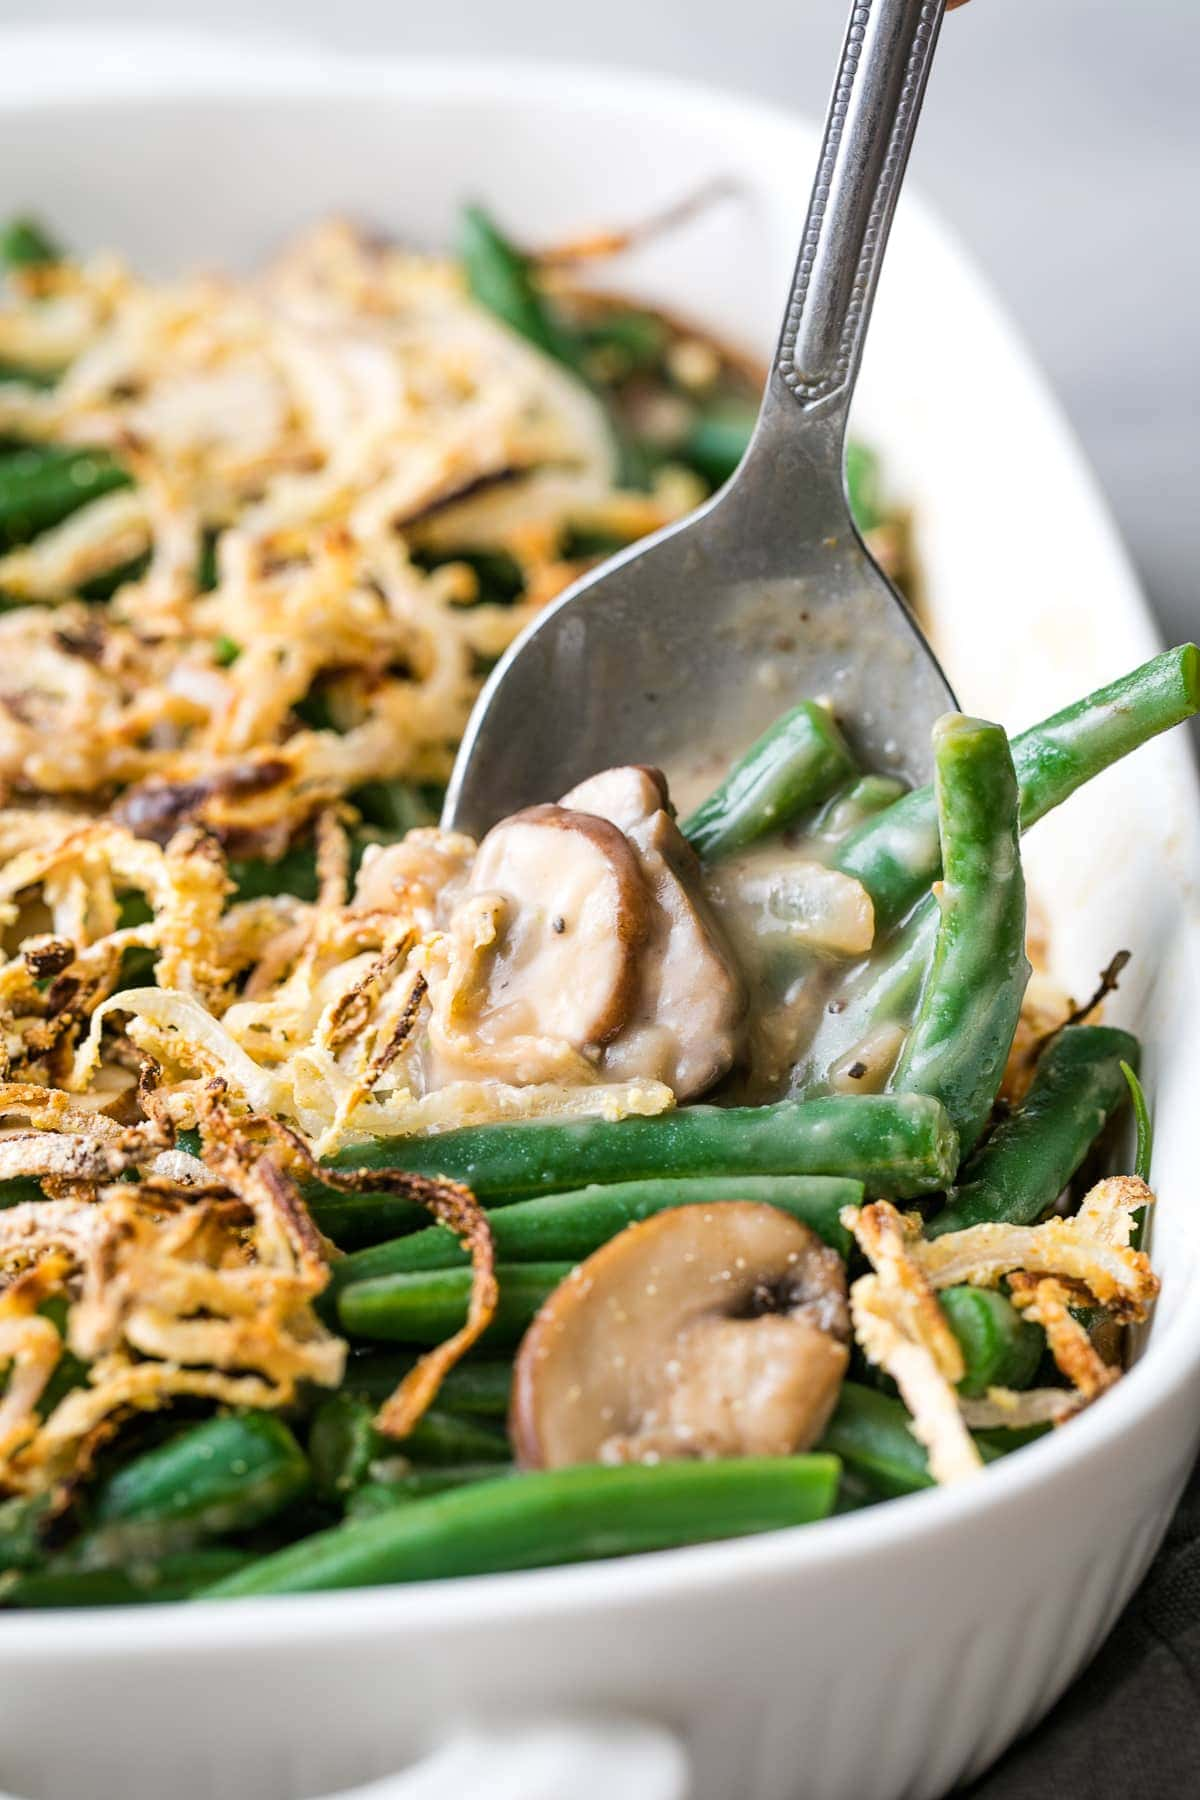 head on view of spoon scooping up vegan green bean casserole in a baking dish.